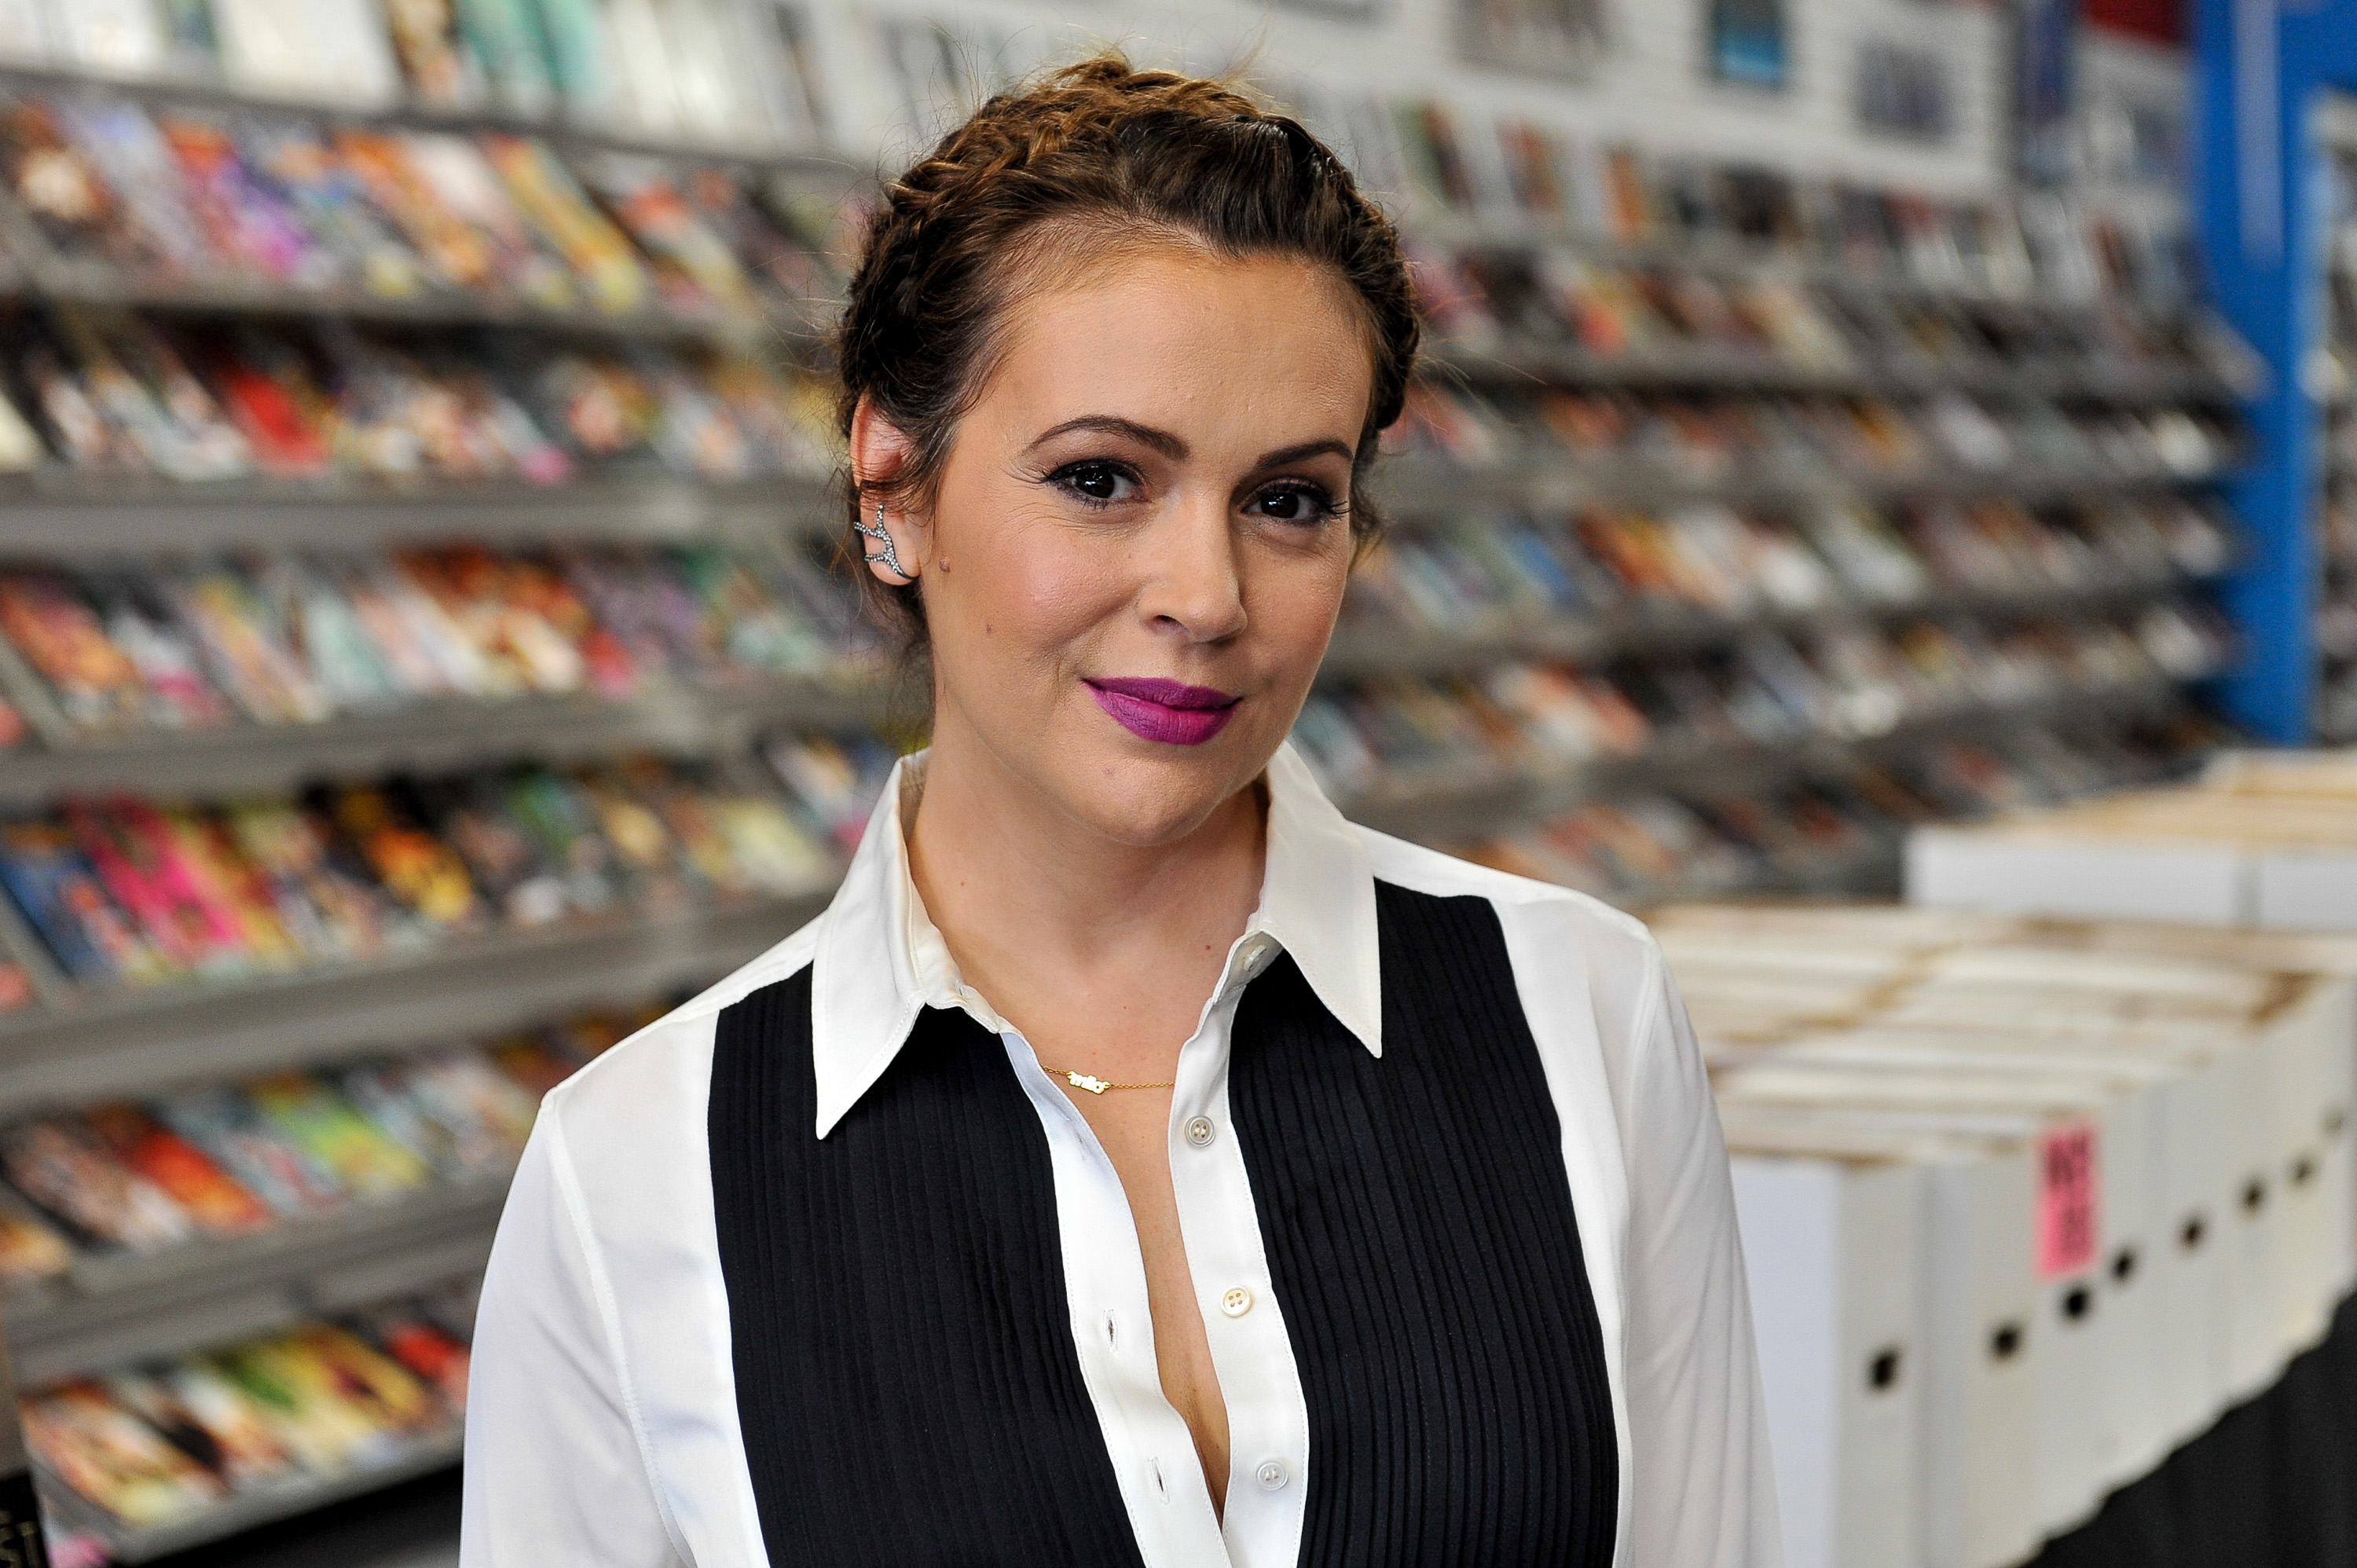 Actress Alyssa Milano attends the signing of  Hacktivist Vol. 2 #1  at The Comic Bug on July 29, 2015 in Manhattan Beach, California.